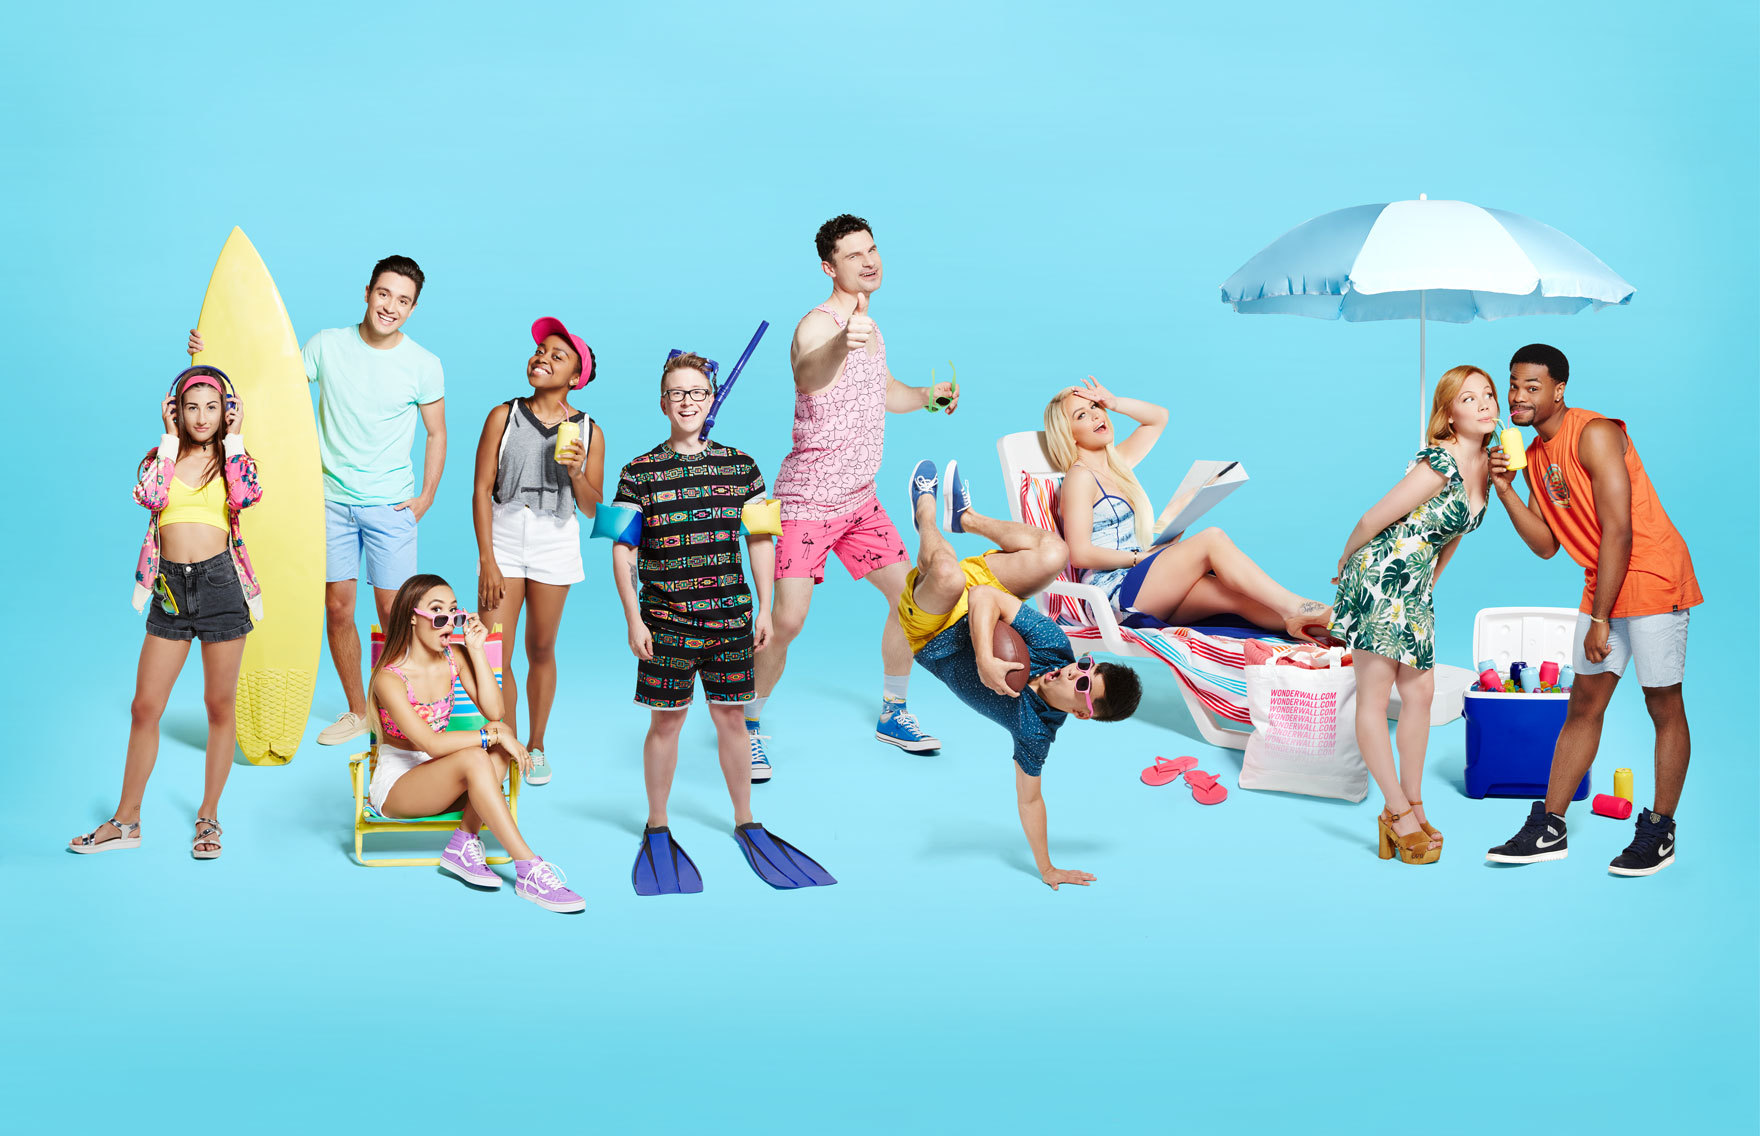 Tyler Oakley, Gigi Gorgeous, Gabriel Conte, MayBaby, King Bach and more come to Wonderwall.com.